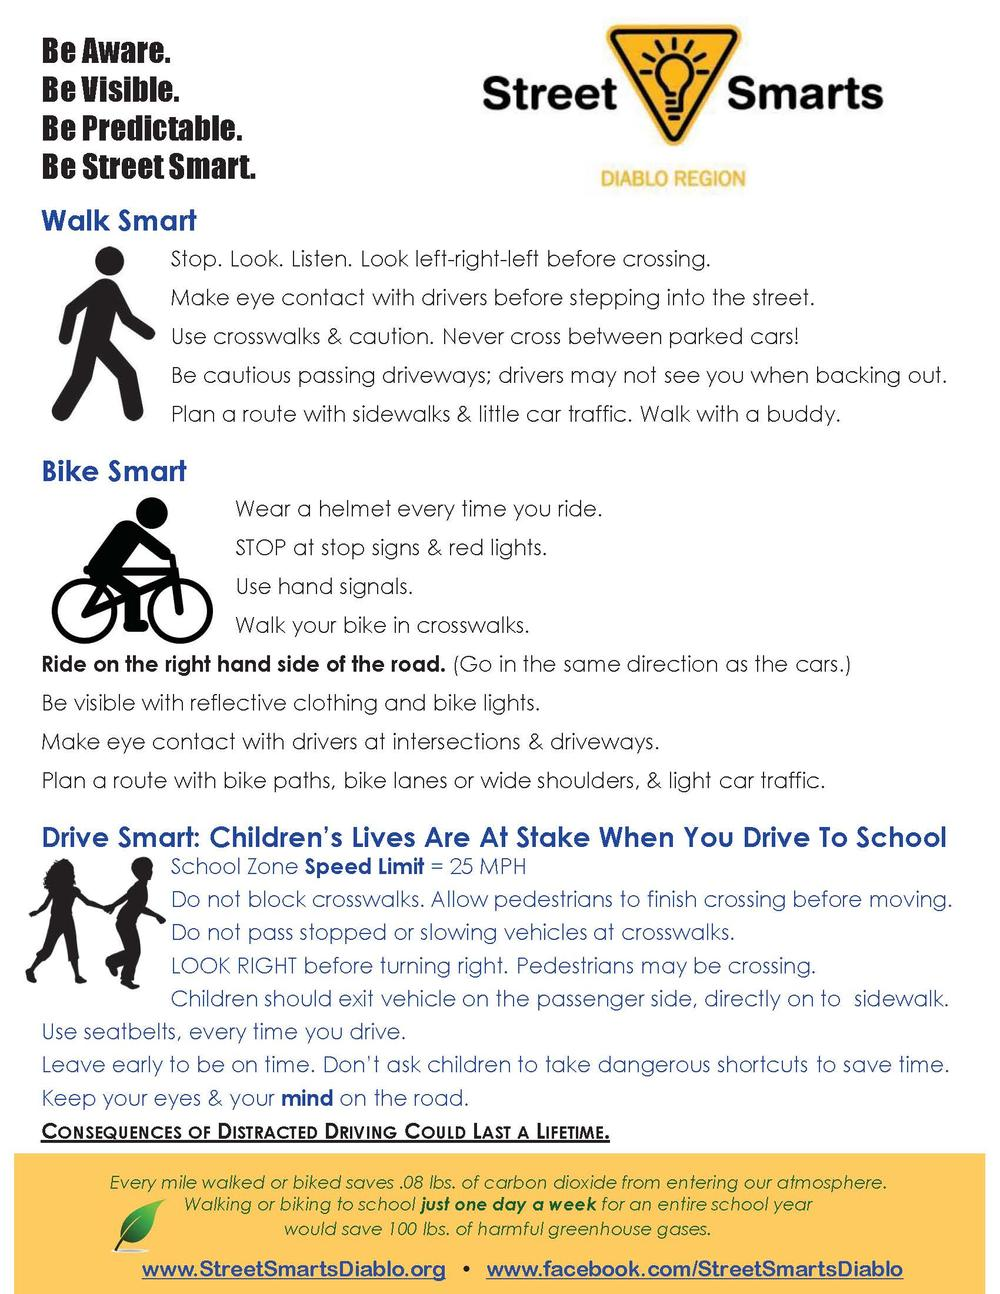 Street Smarts guidelines